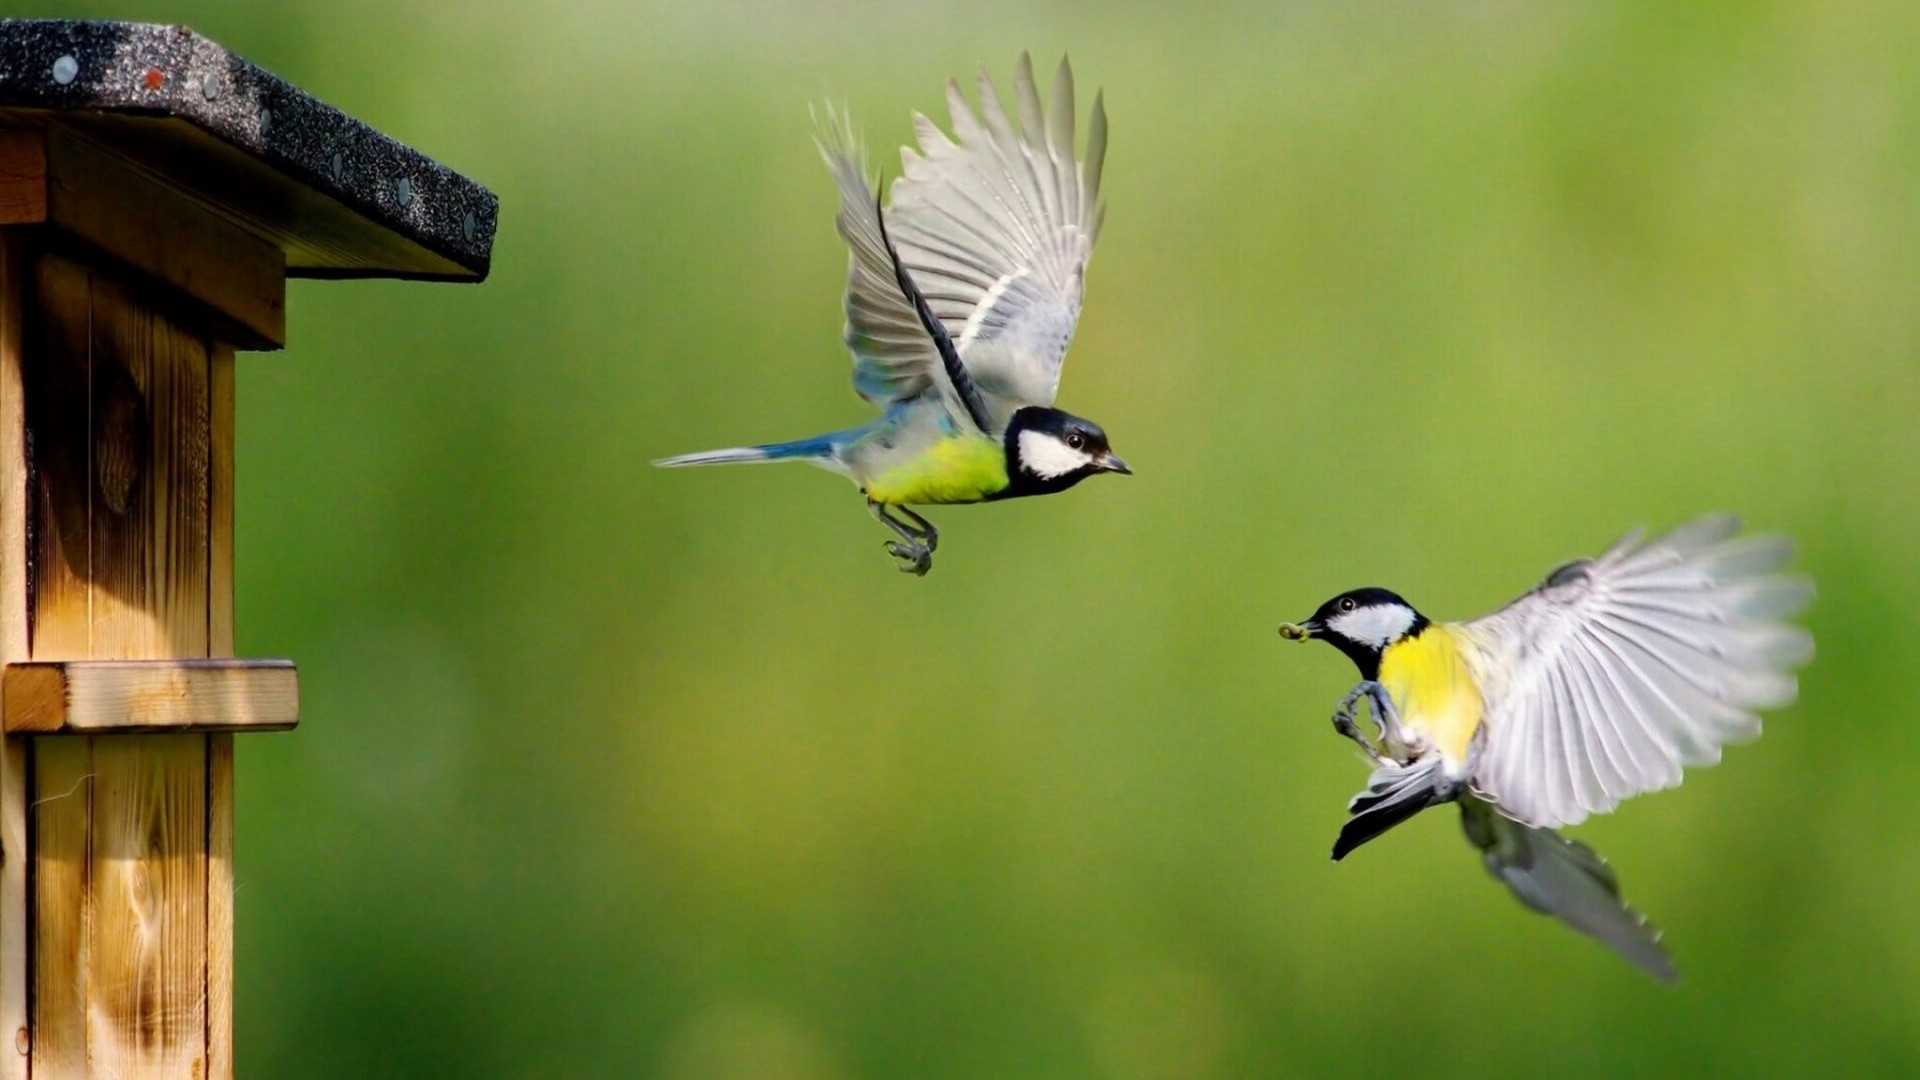 Bluetit-Cute-Birds-for-desktop-and-mobile-in-high-resolution-Hd-1920x1080-Need-wallpaper-wp3603558